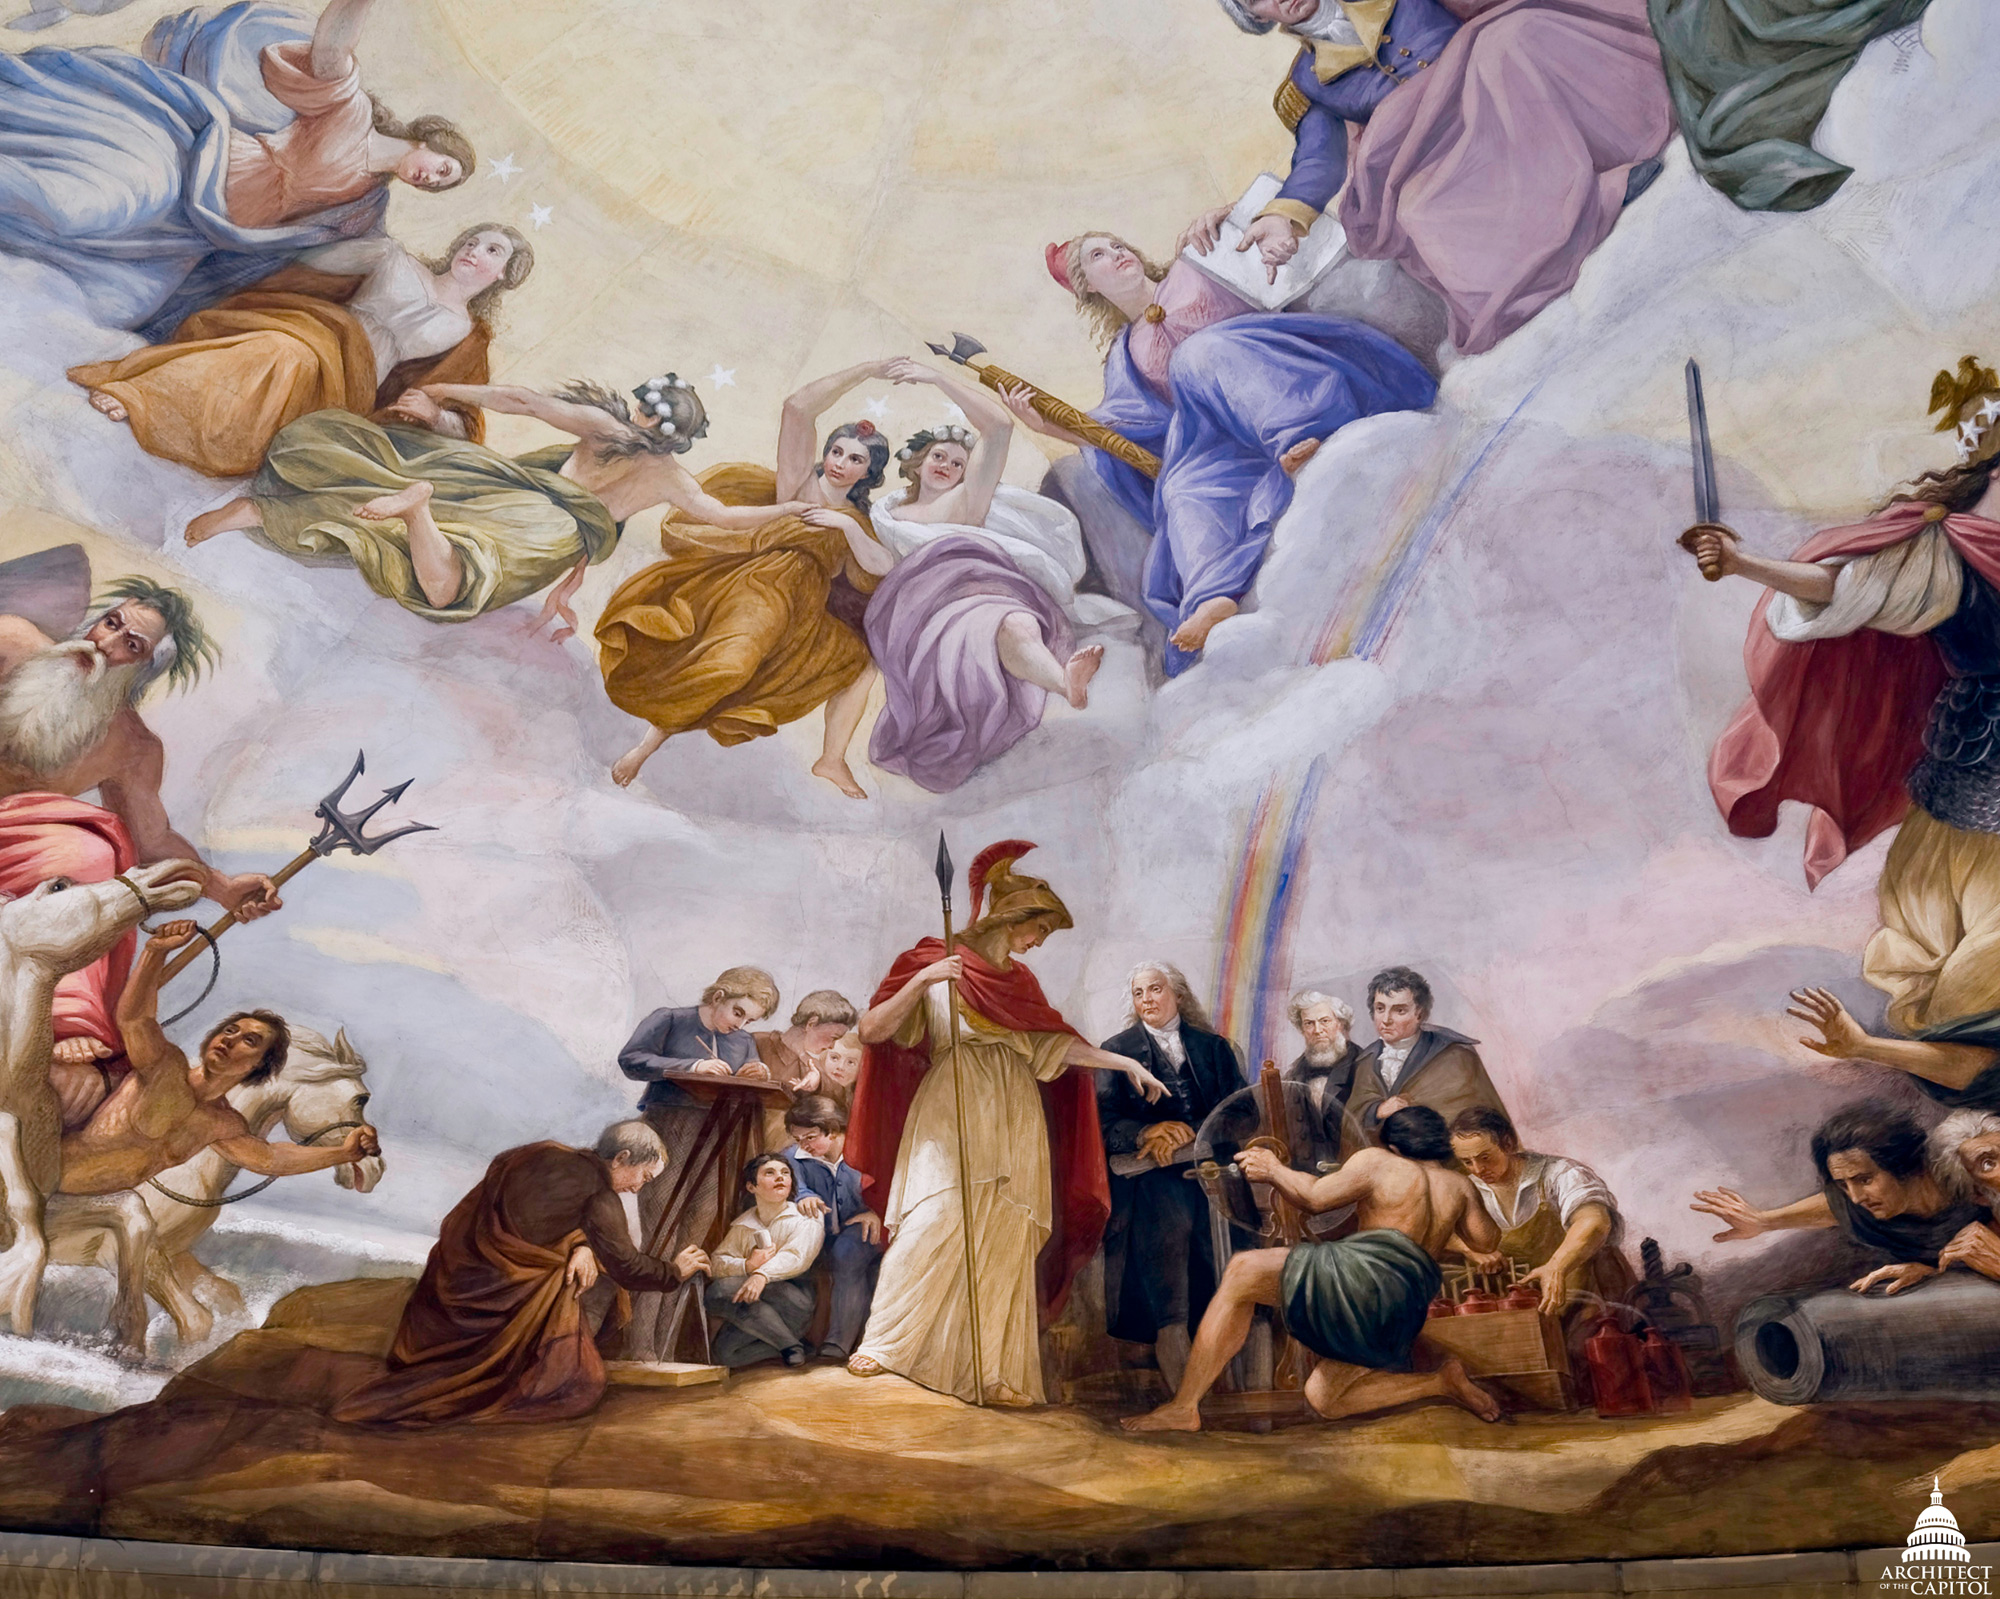 Apotheosis of Washington group Science, with Minerva teaching Benjamin Franklin, Robert Fulton, and Samuel F.B. Morse.